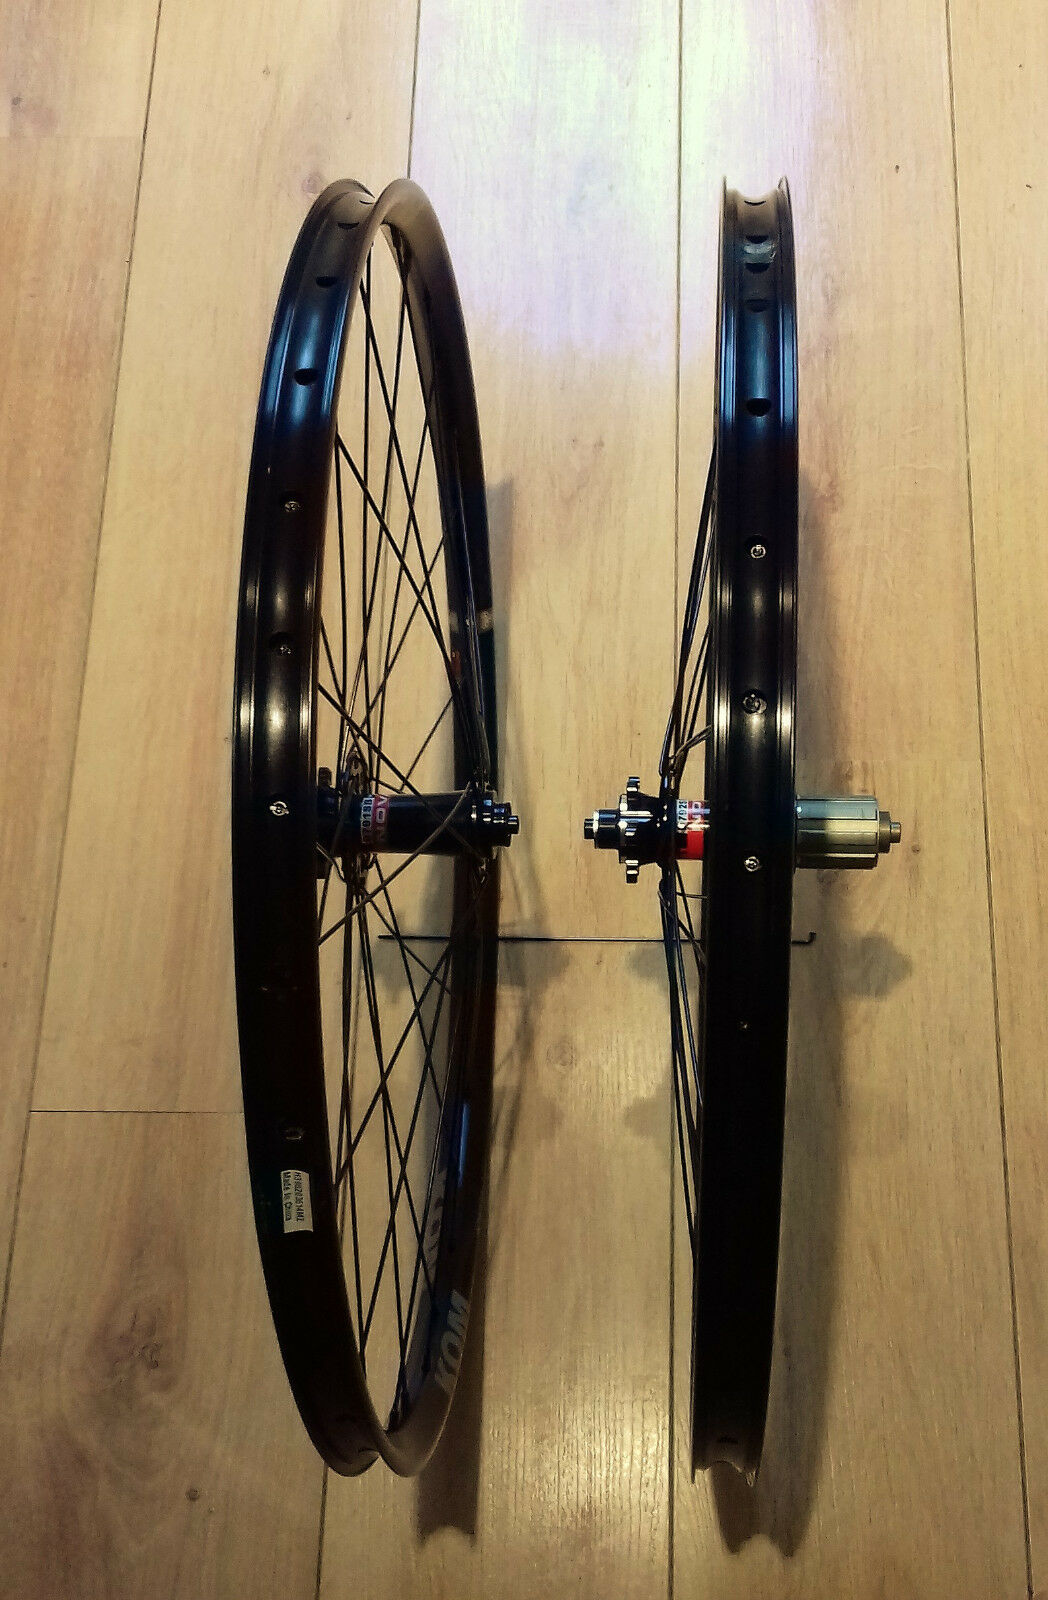 WTB Frequency, ST, or KOM, 26 or 27.5  inch Wheelsets, Novatec D791SB D792SB Hubs  famous brand